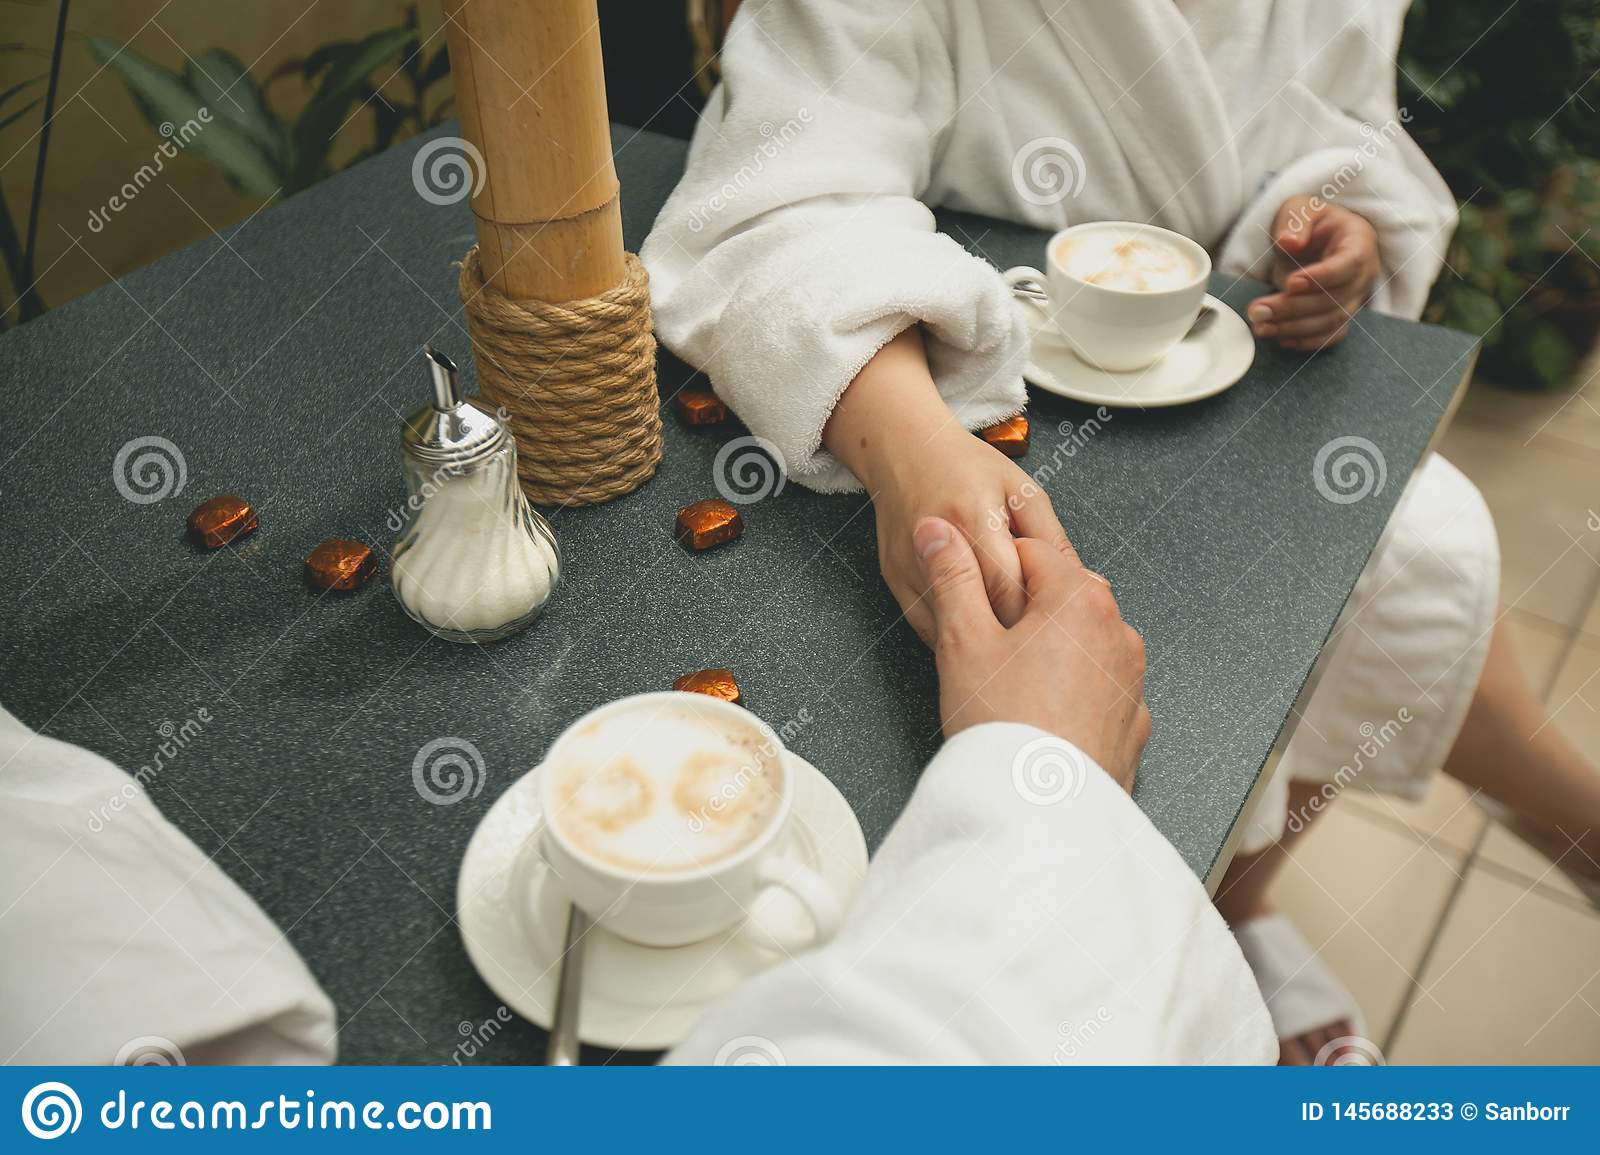 A couple in bathrobes holding hands, drinking coffee while relaxing in the Spa, close-up. Hands of lovers on the background of a